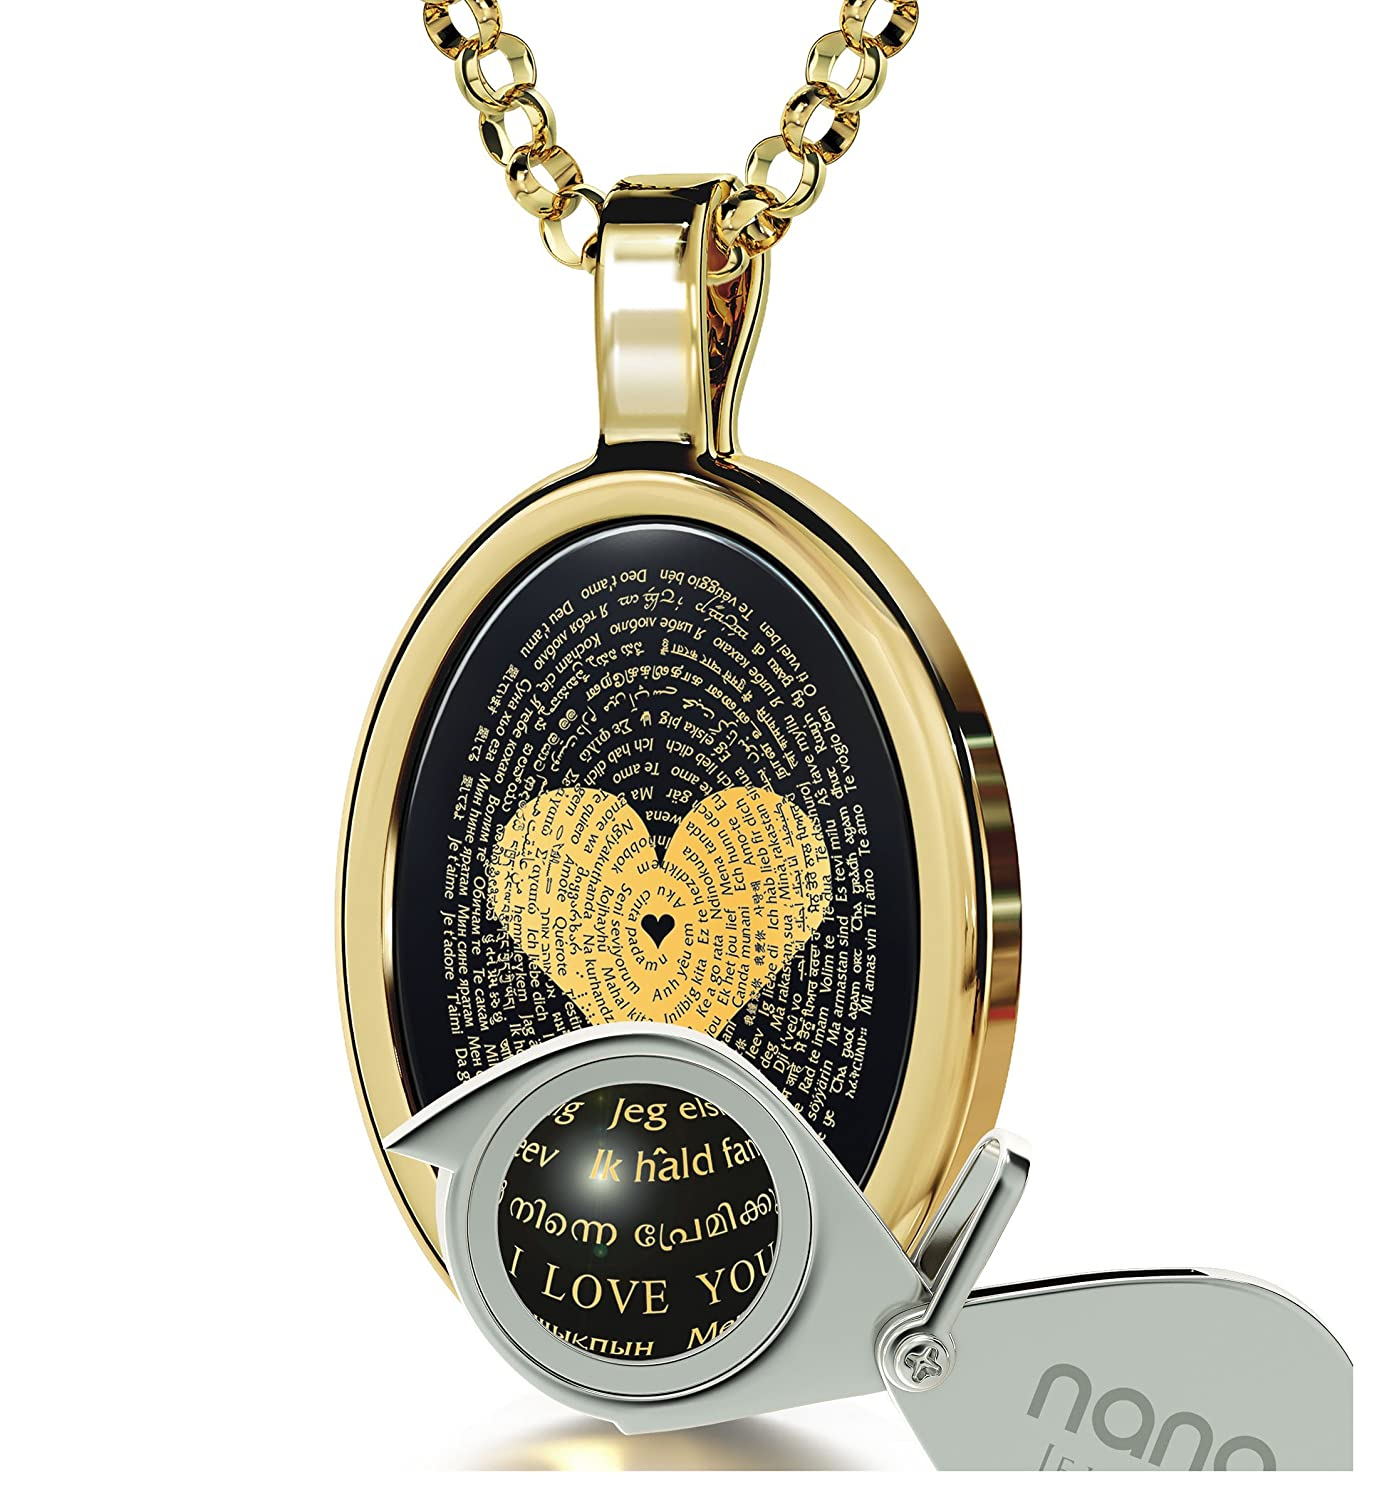 Love Necklace Inscribed with I Love You in 120 Languages in 24k Gold on Onyx Pendant, 18 inch NanoStyle Jewelry